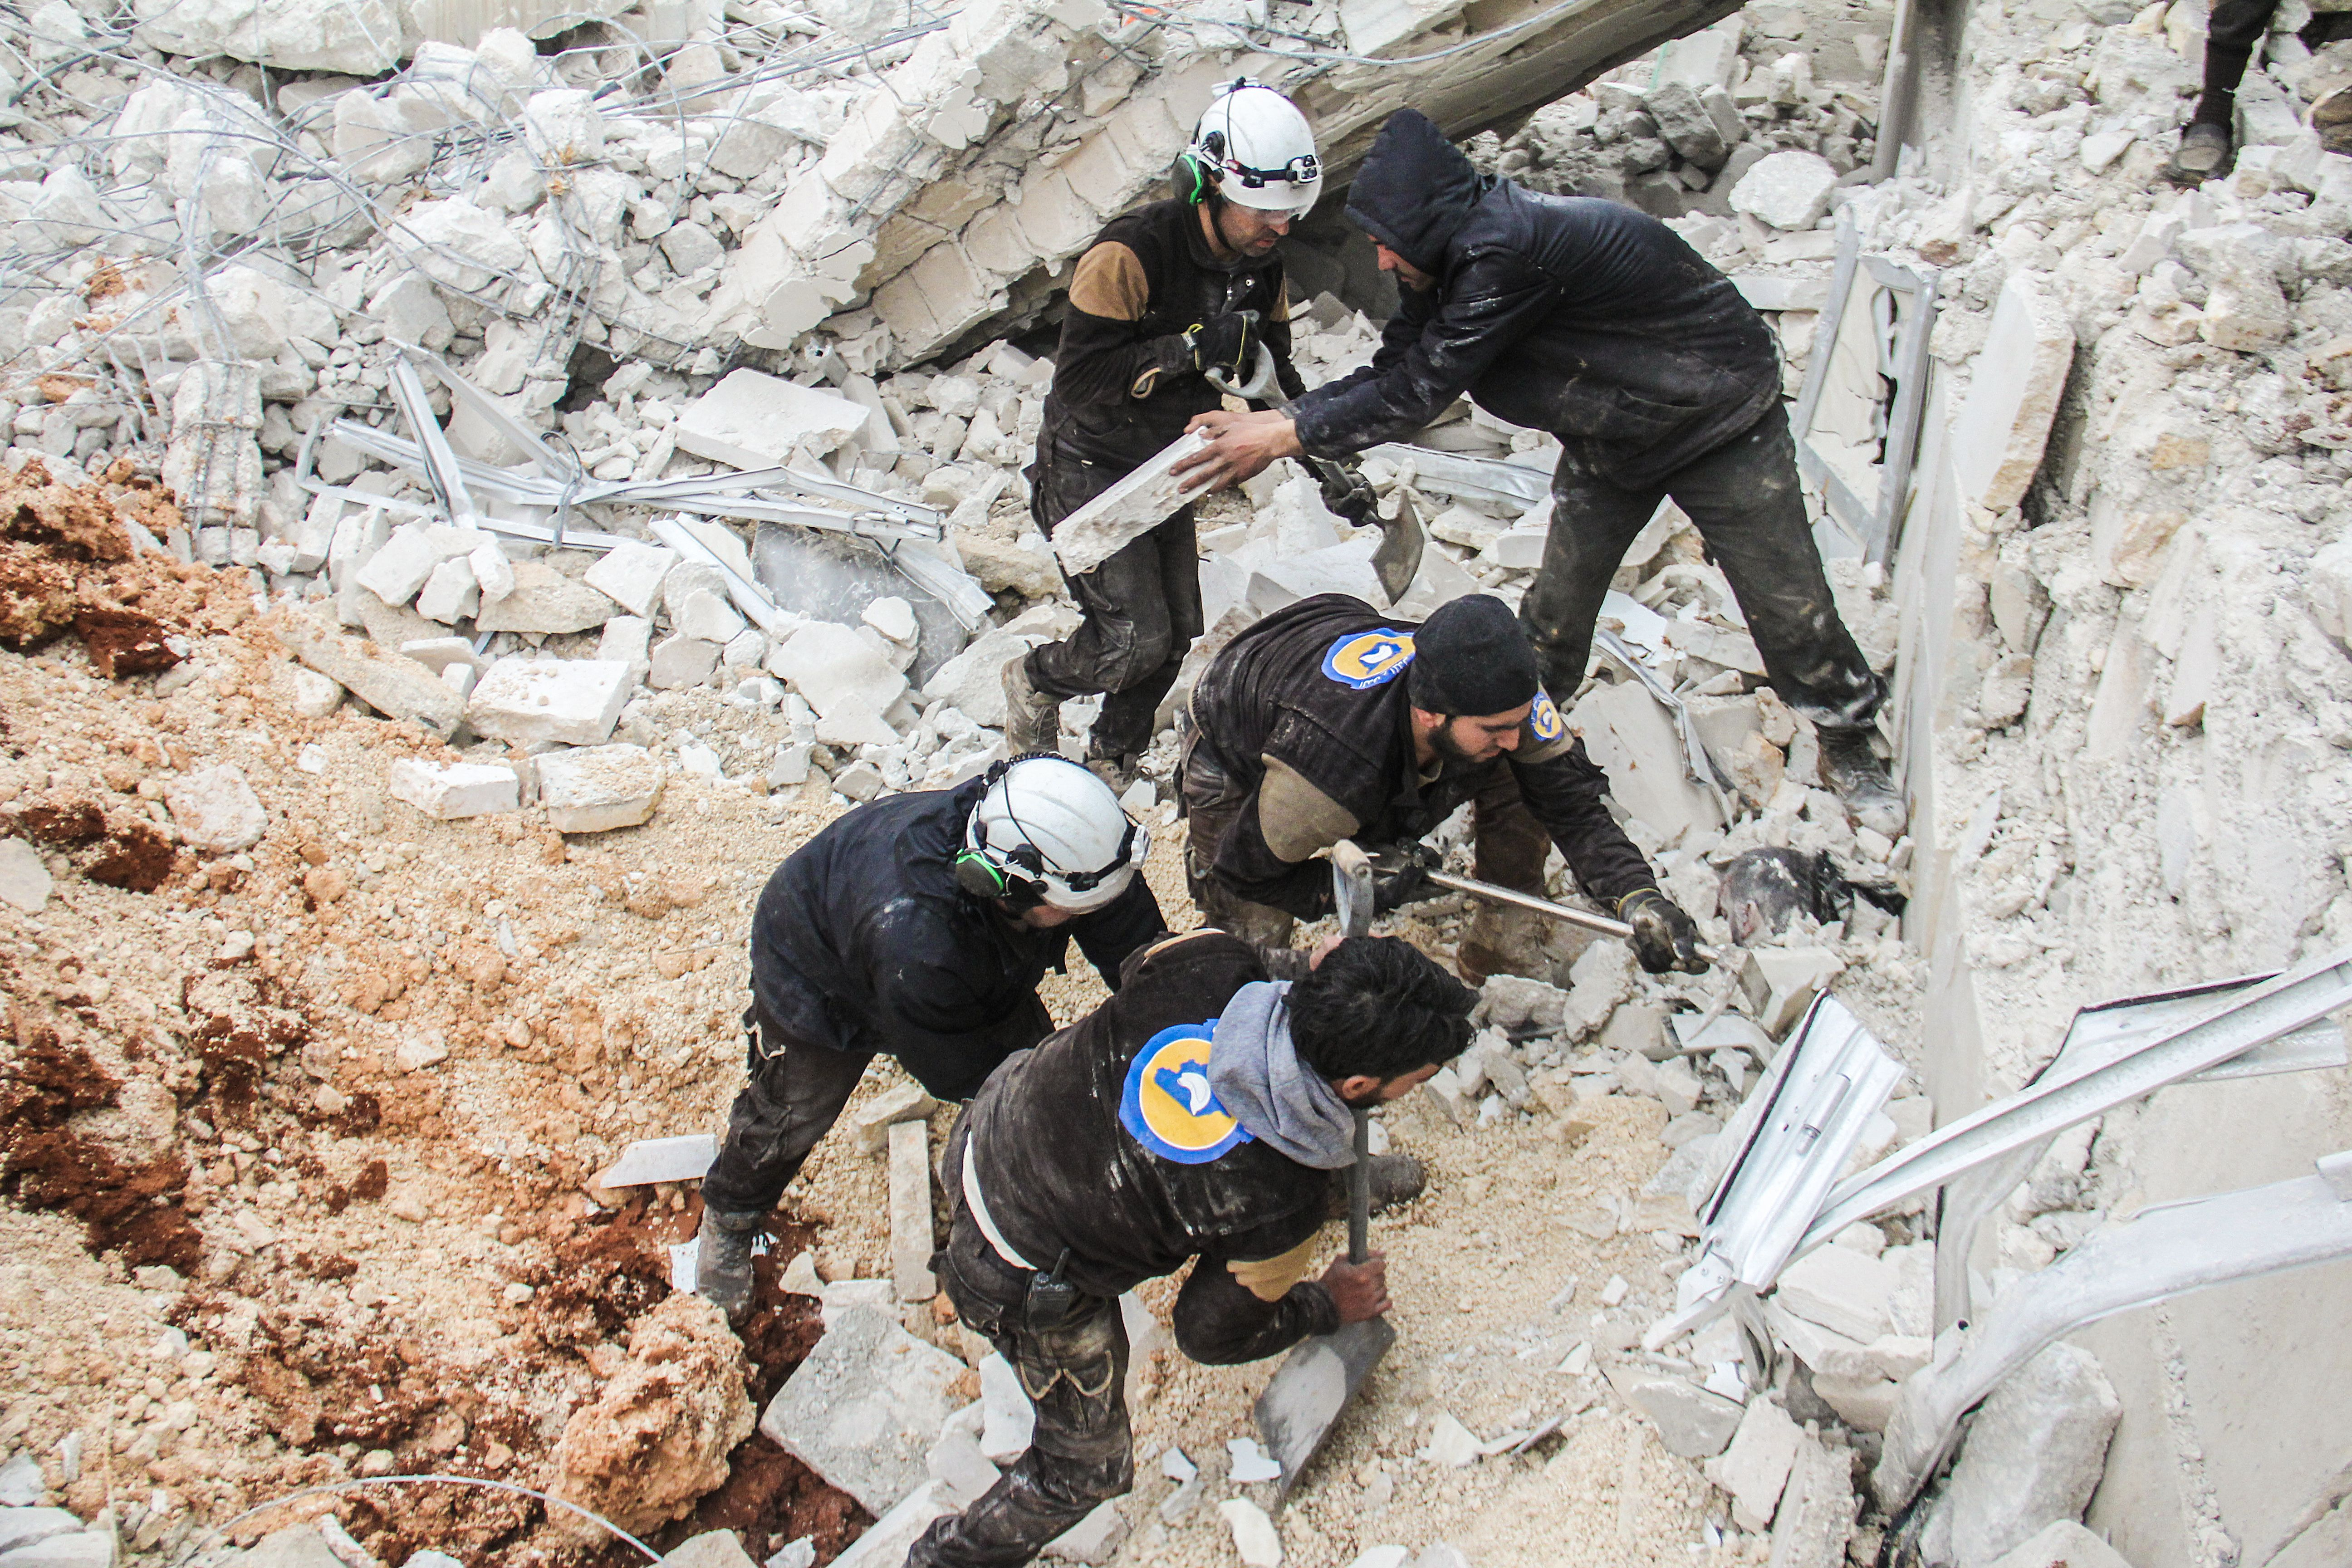 Syrian civil defence volunteers, known as the White Helmets, dig through the rubble of a mosque following a reported airstrike on a mosque in the village of Al-Jineh in Aleppo province on March 17, 2017. The US military says it carried out an air strike in northern Syria against an Al-Qaeda target, but denies deliberately targeting a mosque where dozens were killed according to the Syrian Observatory for Human Rights. / AFP PHOTO / Omar haj kadour        (Photo credit should read OMAR HAJ KADOUR/AFP/Getty Images)